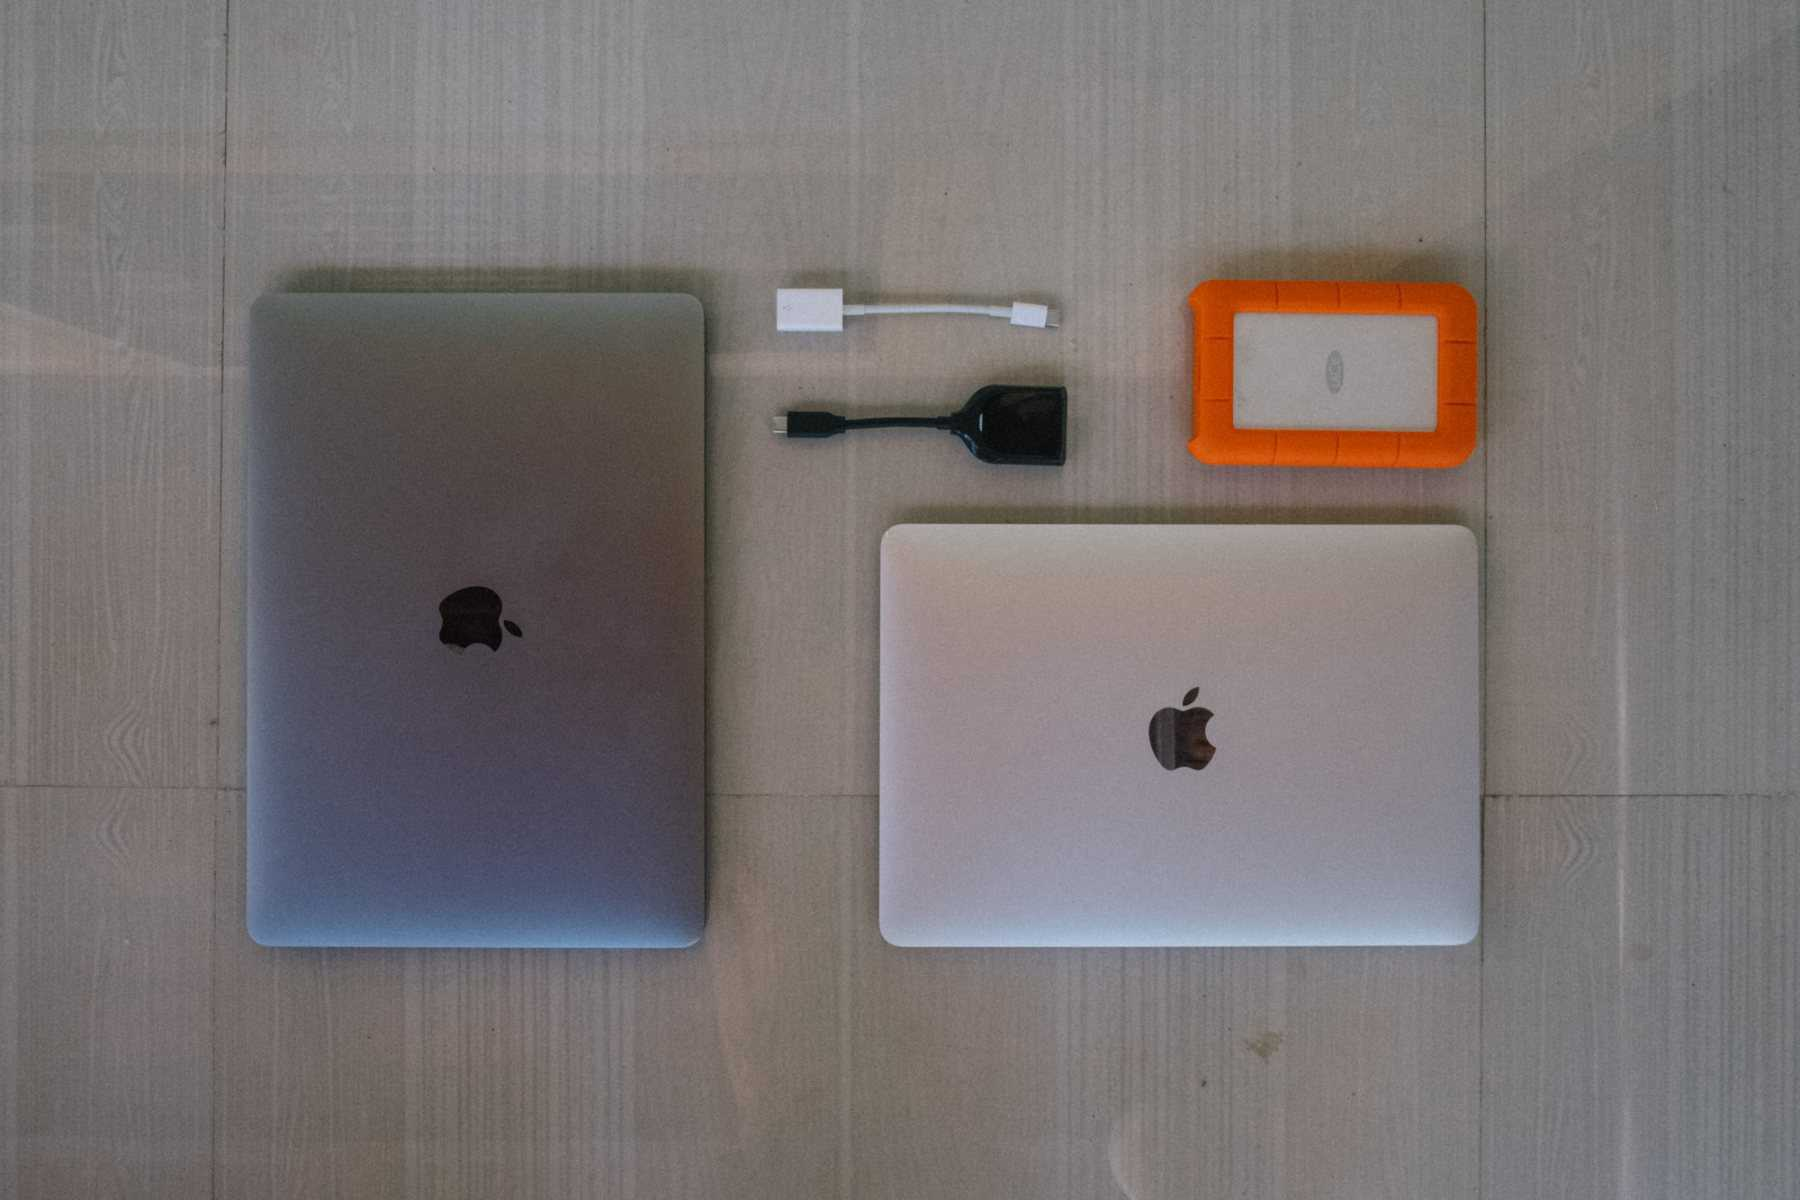 Macbook, MacBook Pro and LaCie